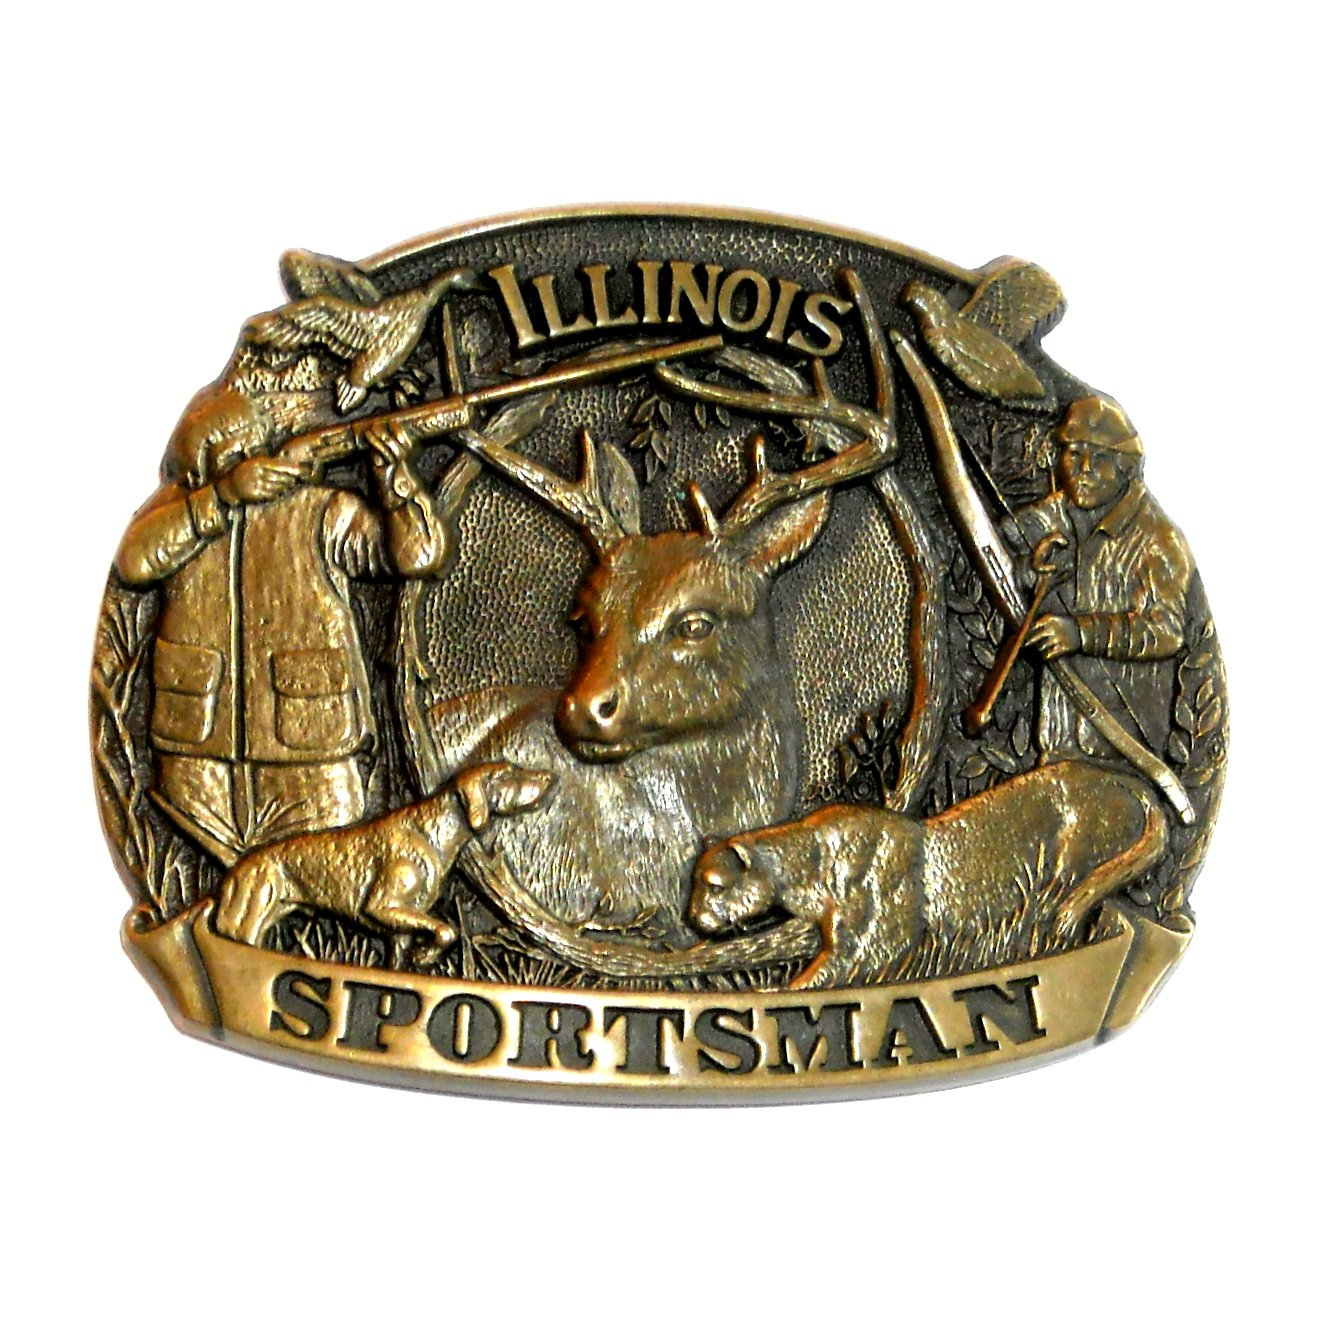 Illinois Sportsman First Edition ADM Brass Belt Buckle